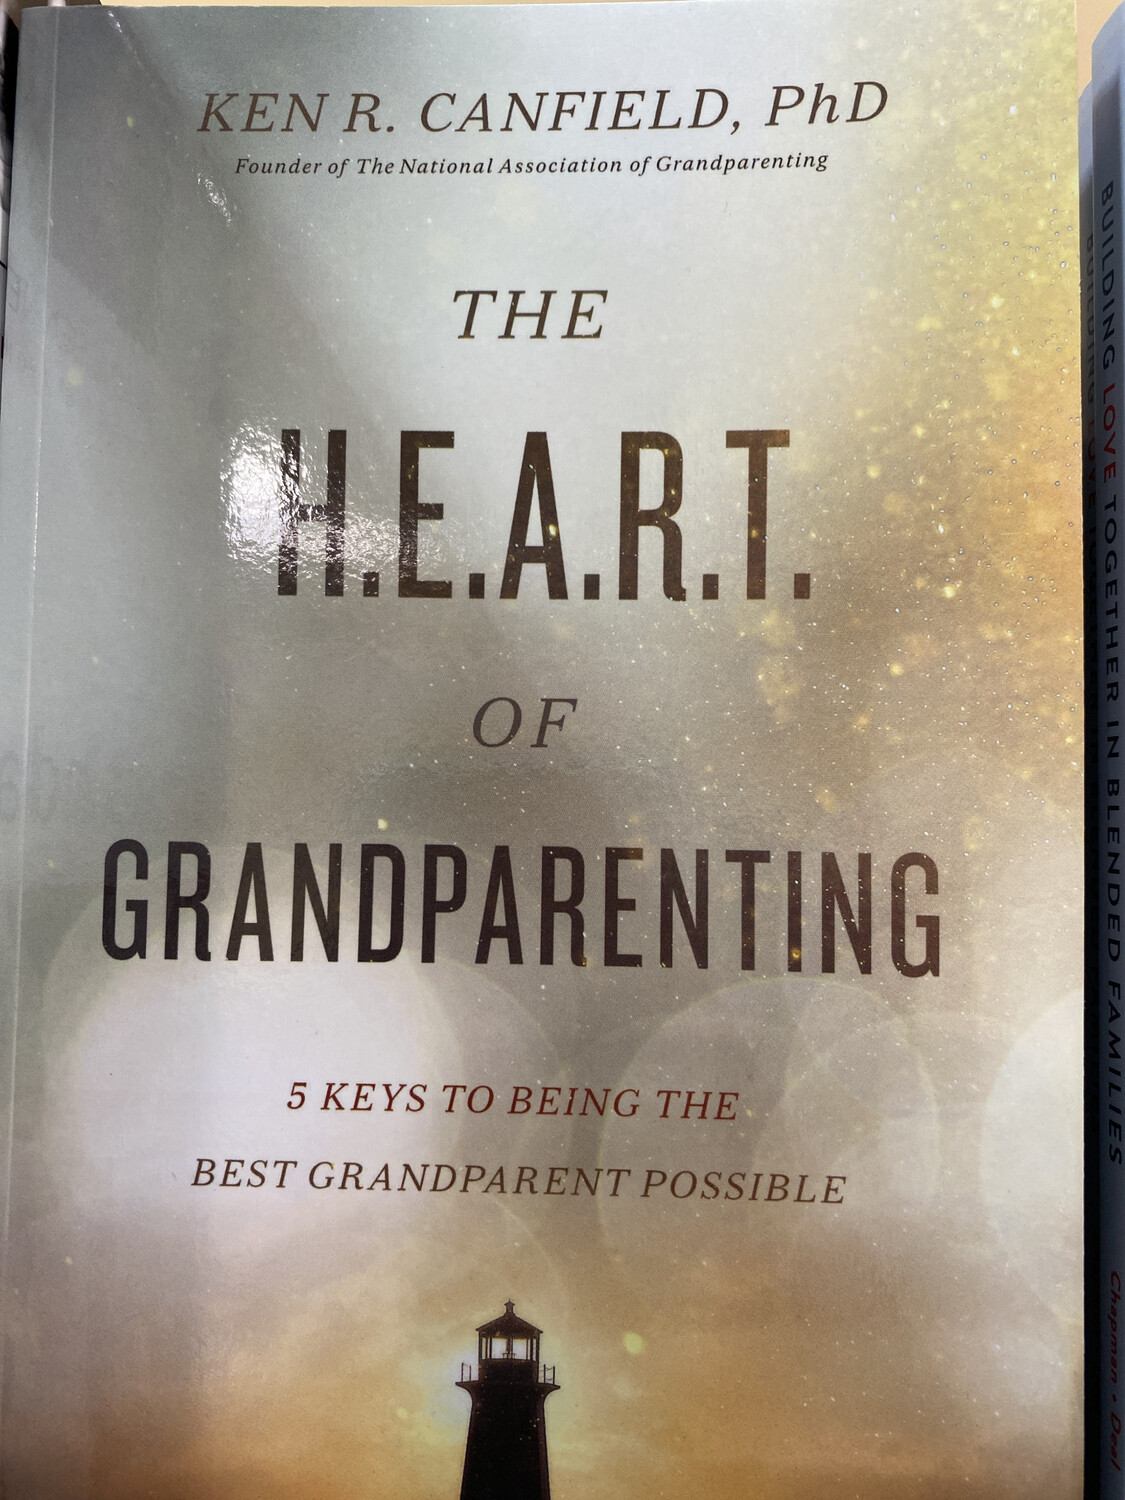 CANFIELD, The HEART of Grandparenting